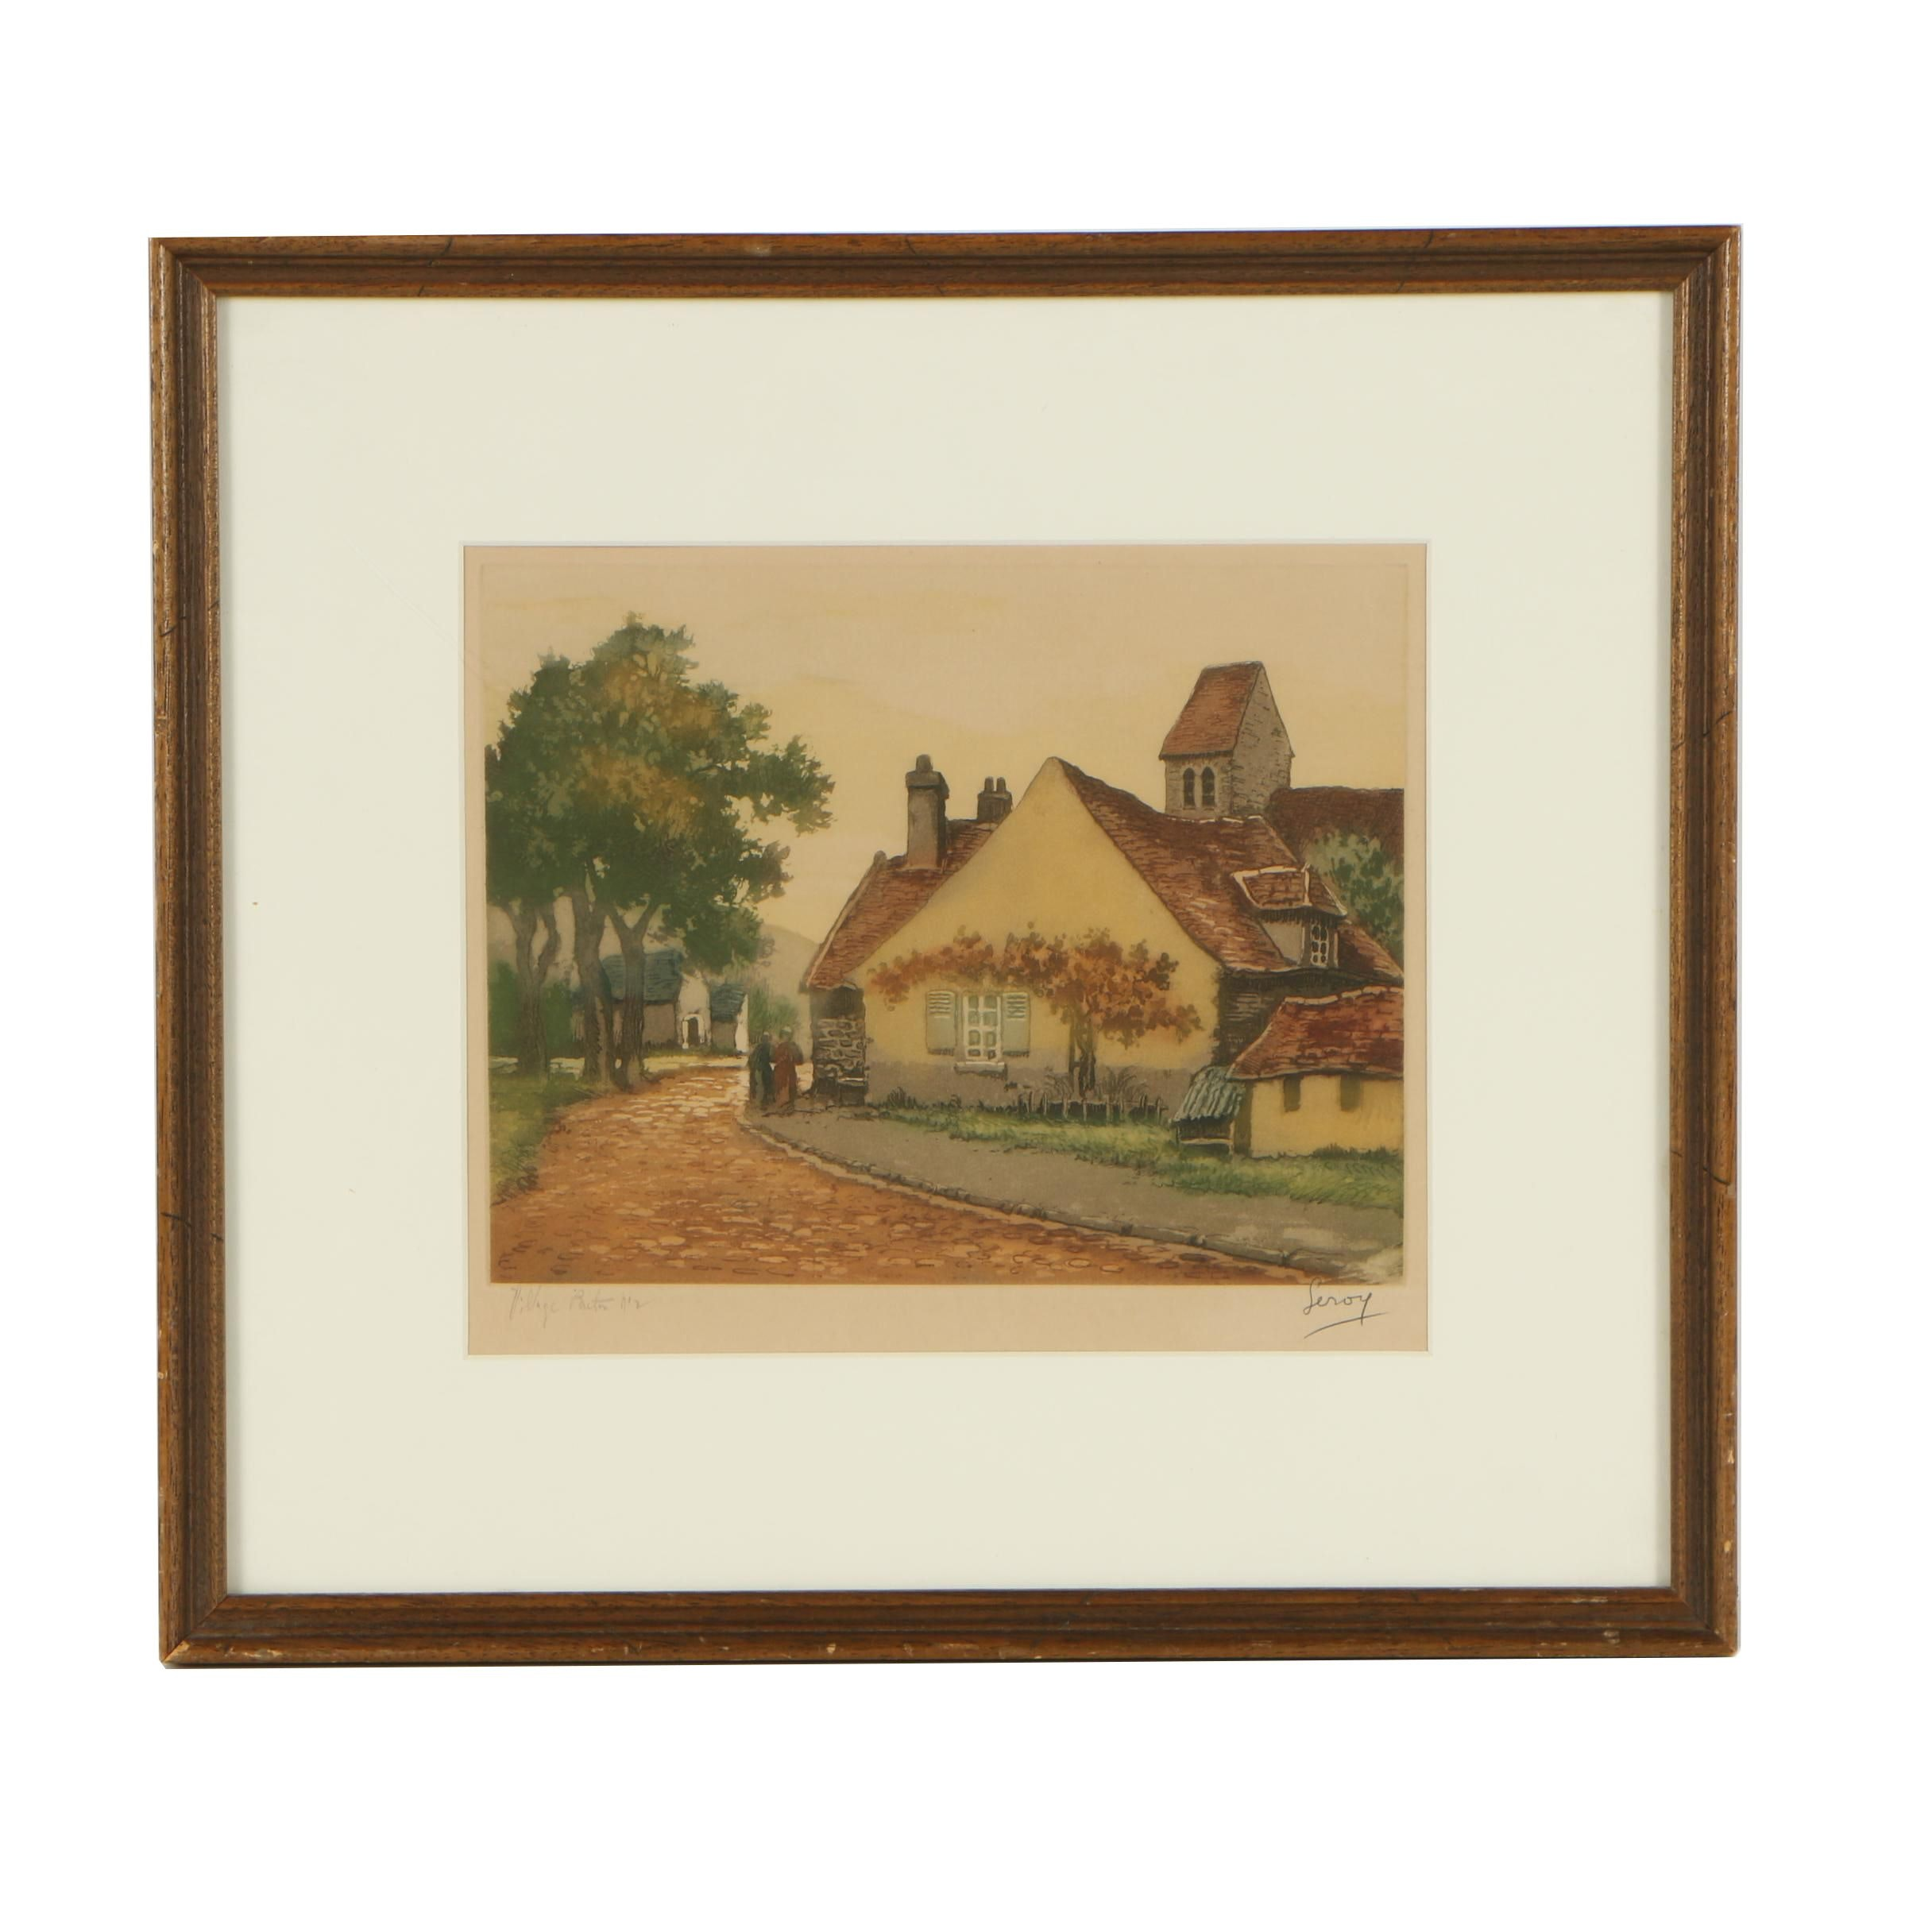 Leroy Color Etching of Village Scene